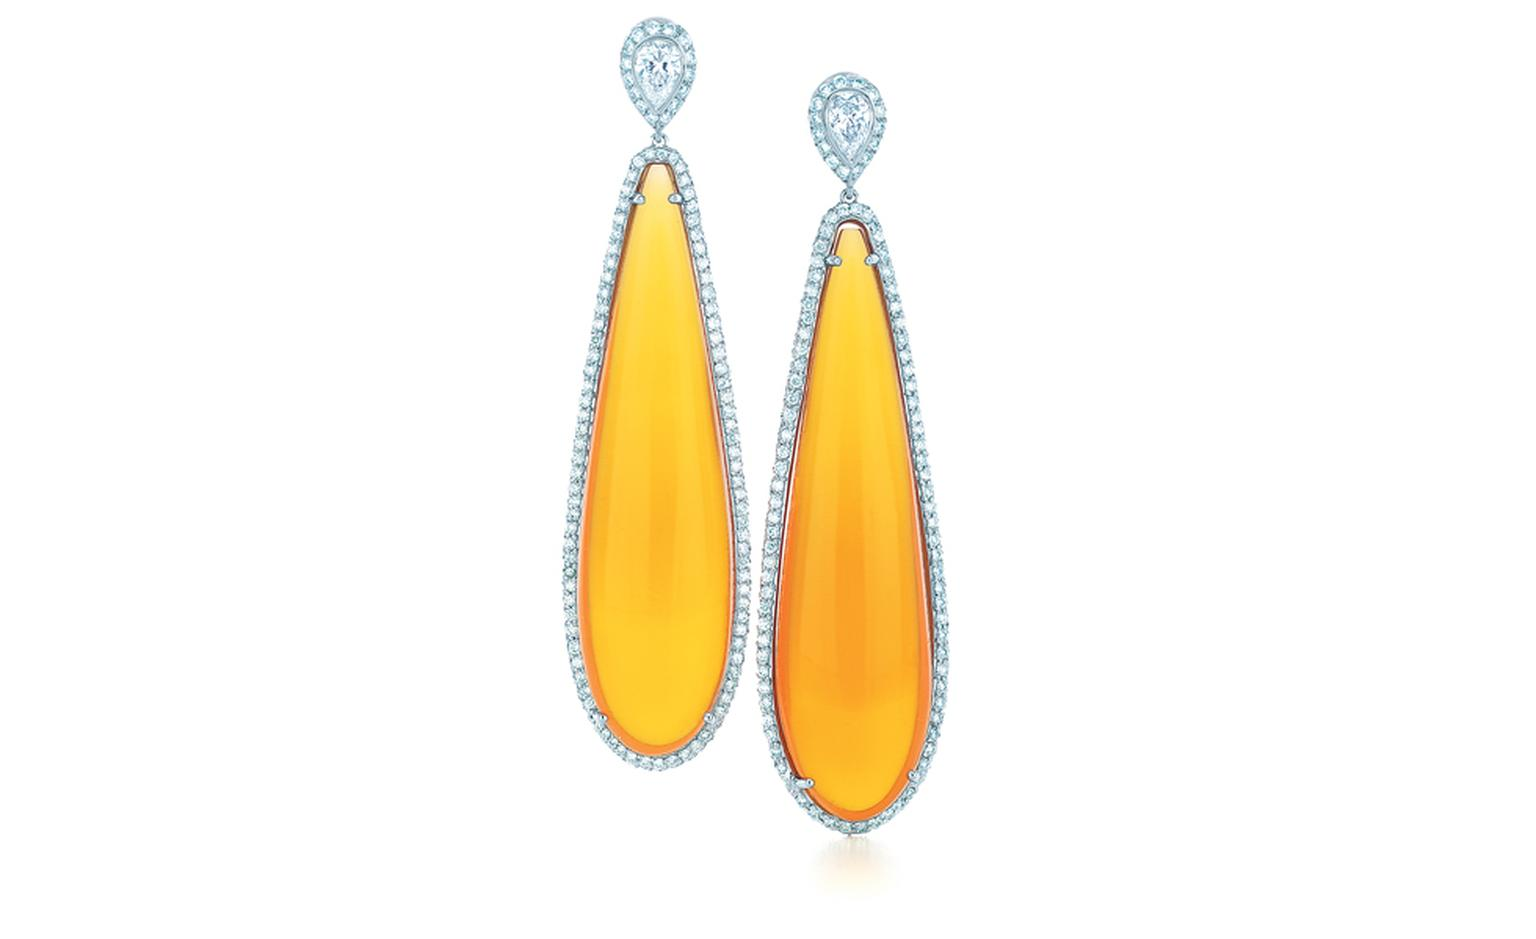 TIFFANY & CO. Fire opal cabochon and diamond earrings in platinum. POA